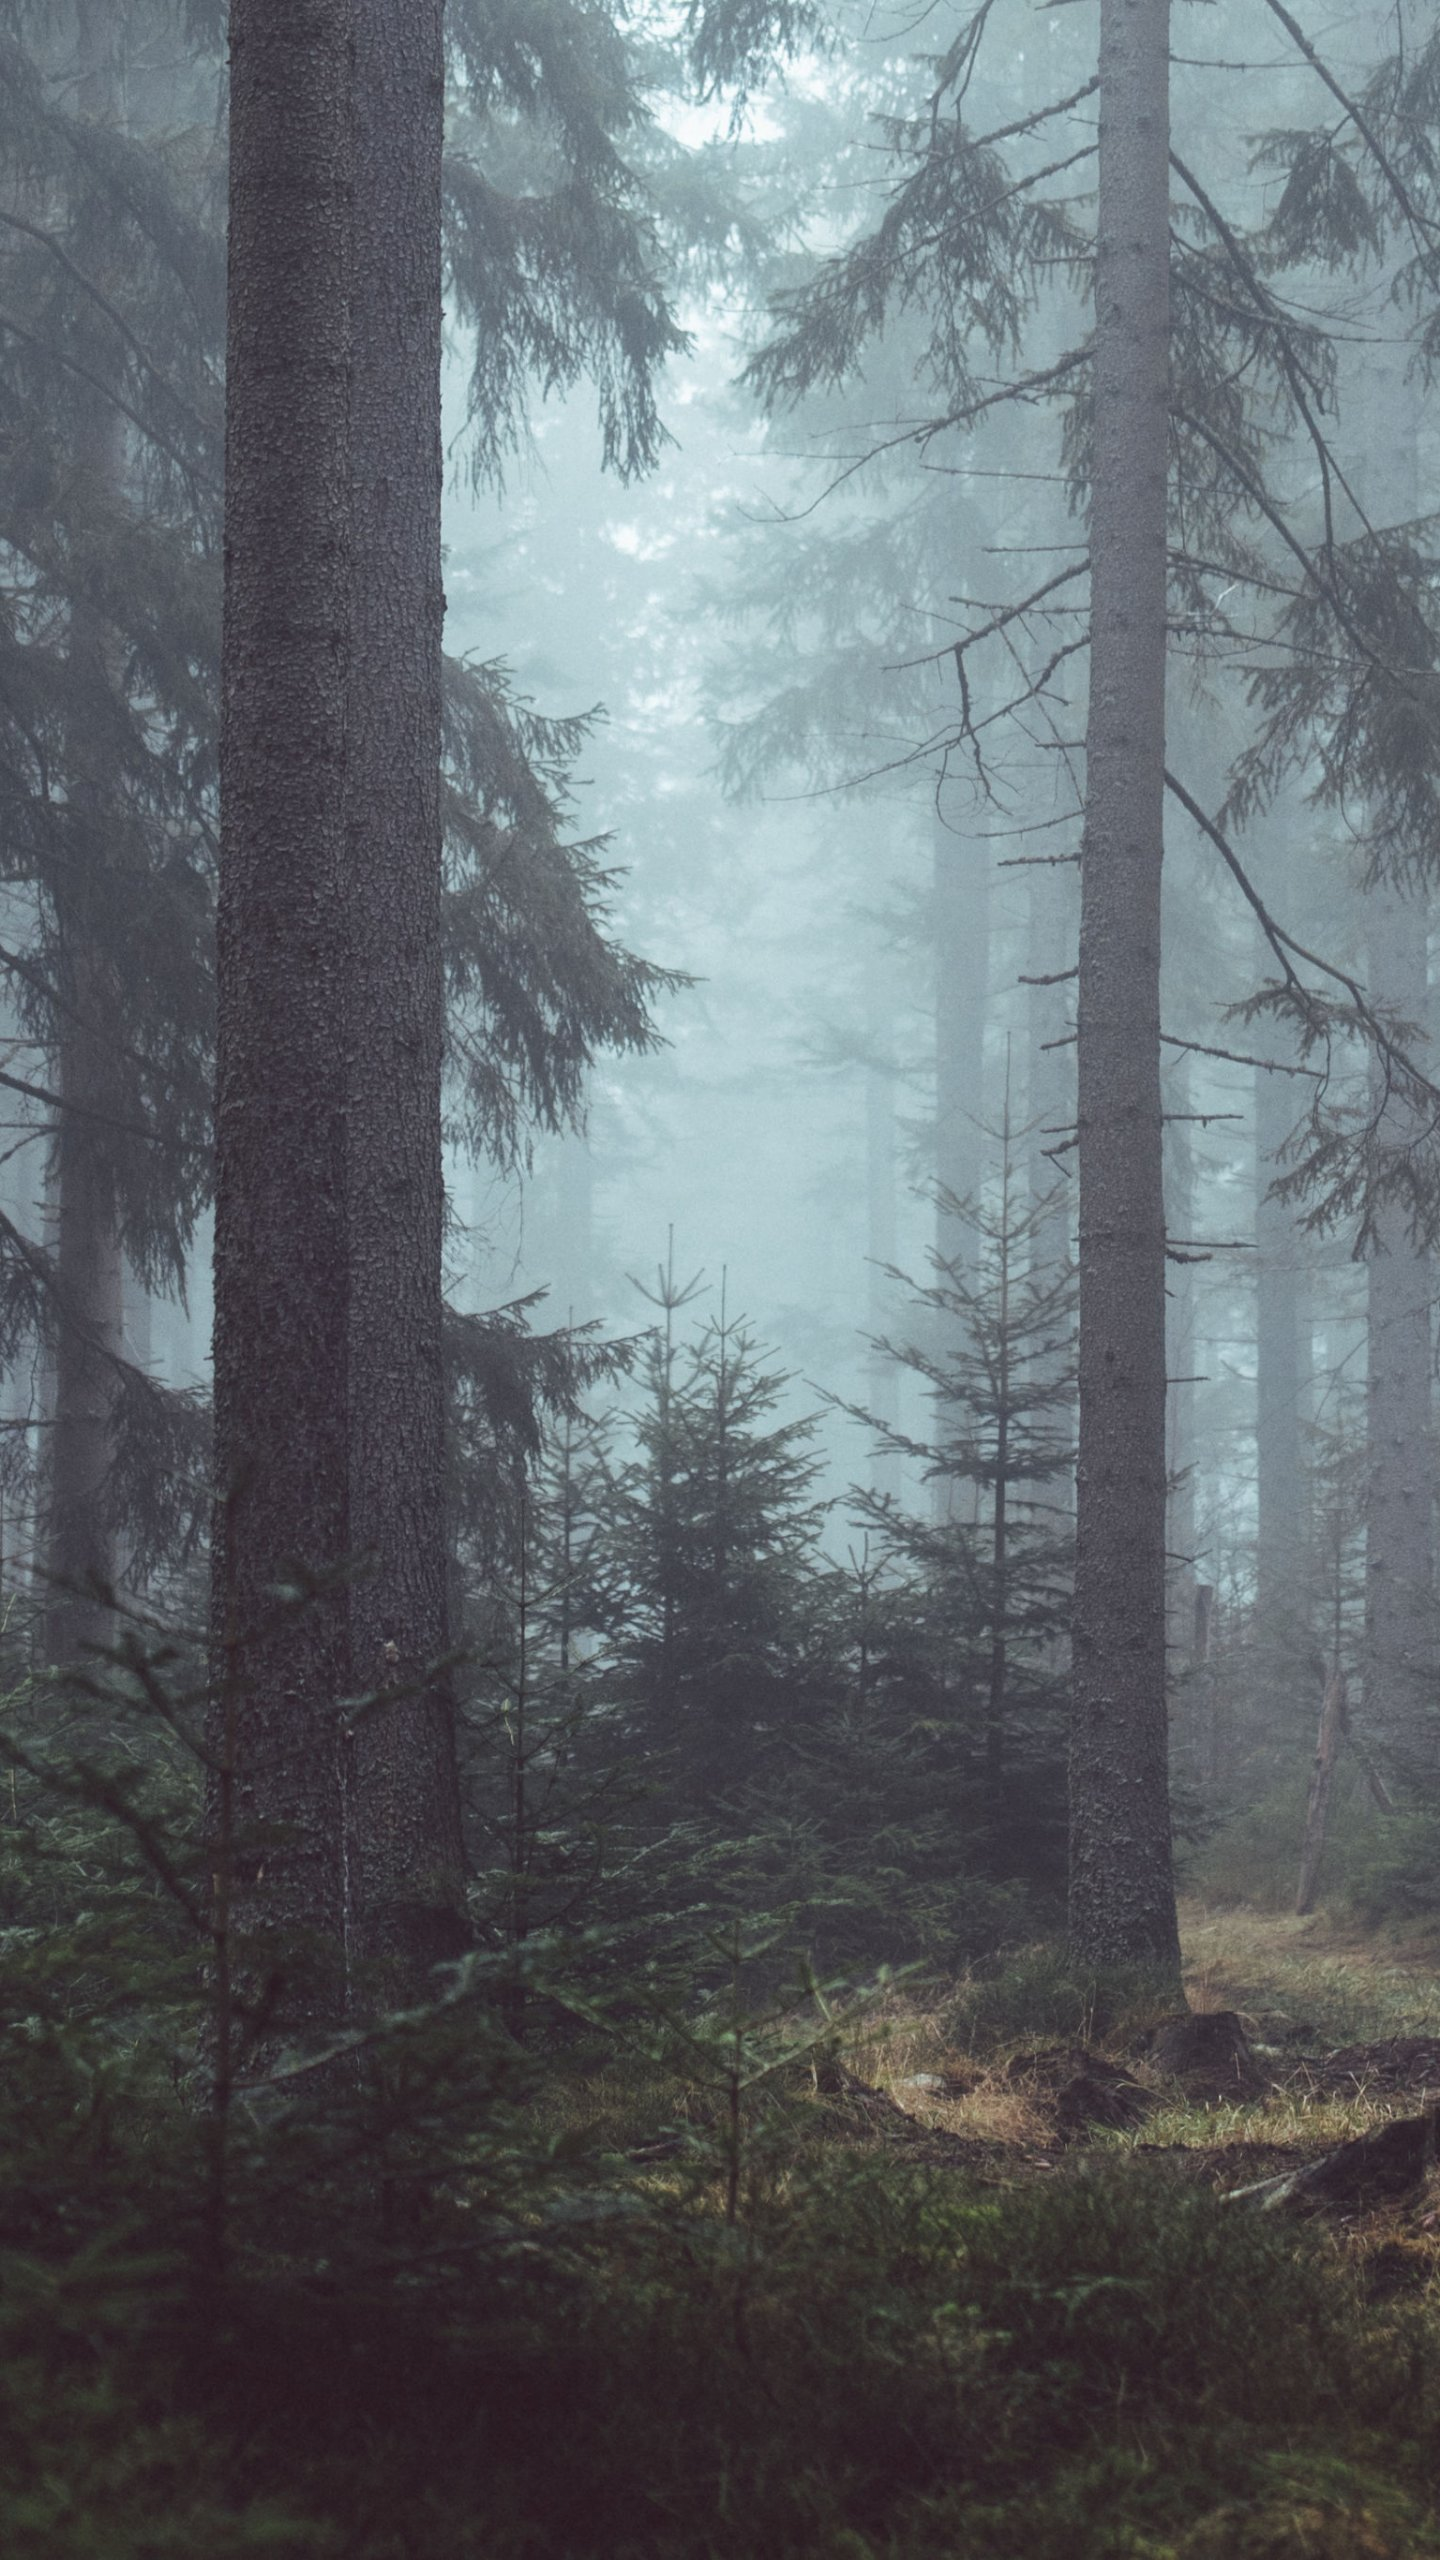 misty forest wallpaper iphone, android \u0026 desktop backgrounds